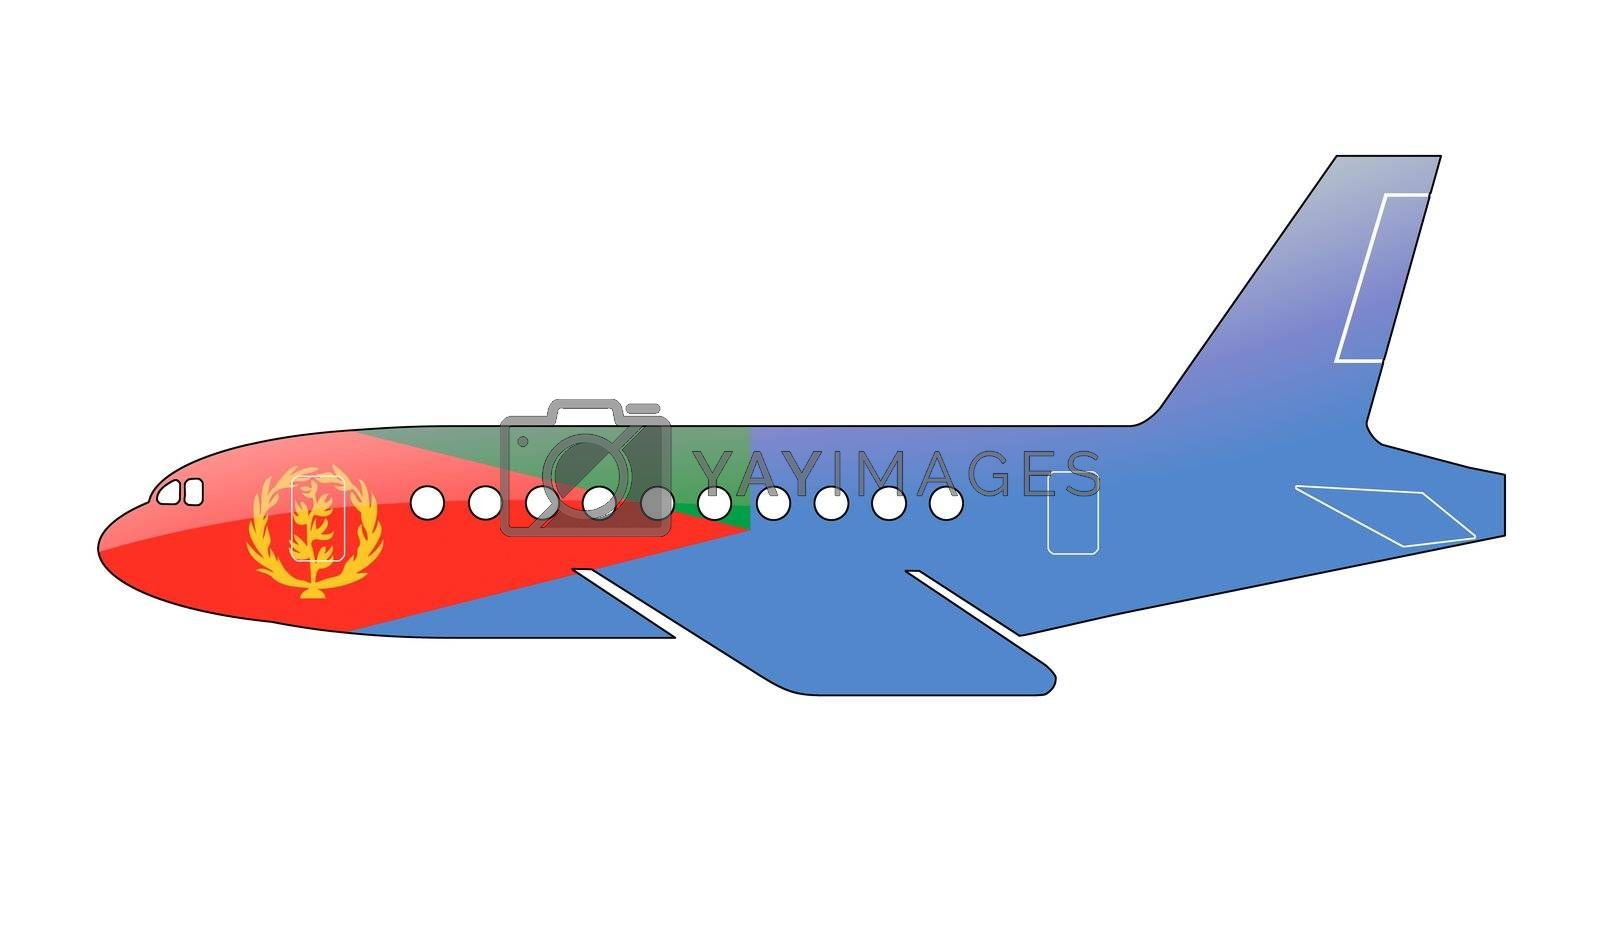 The Eritrea flag painted on the silhouette of a aircraft. glossy illustration